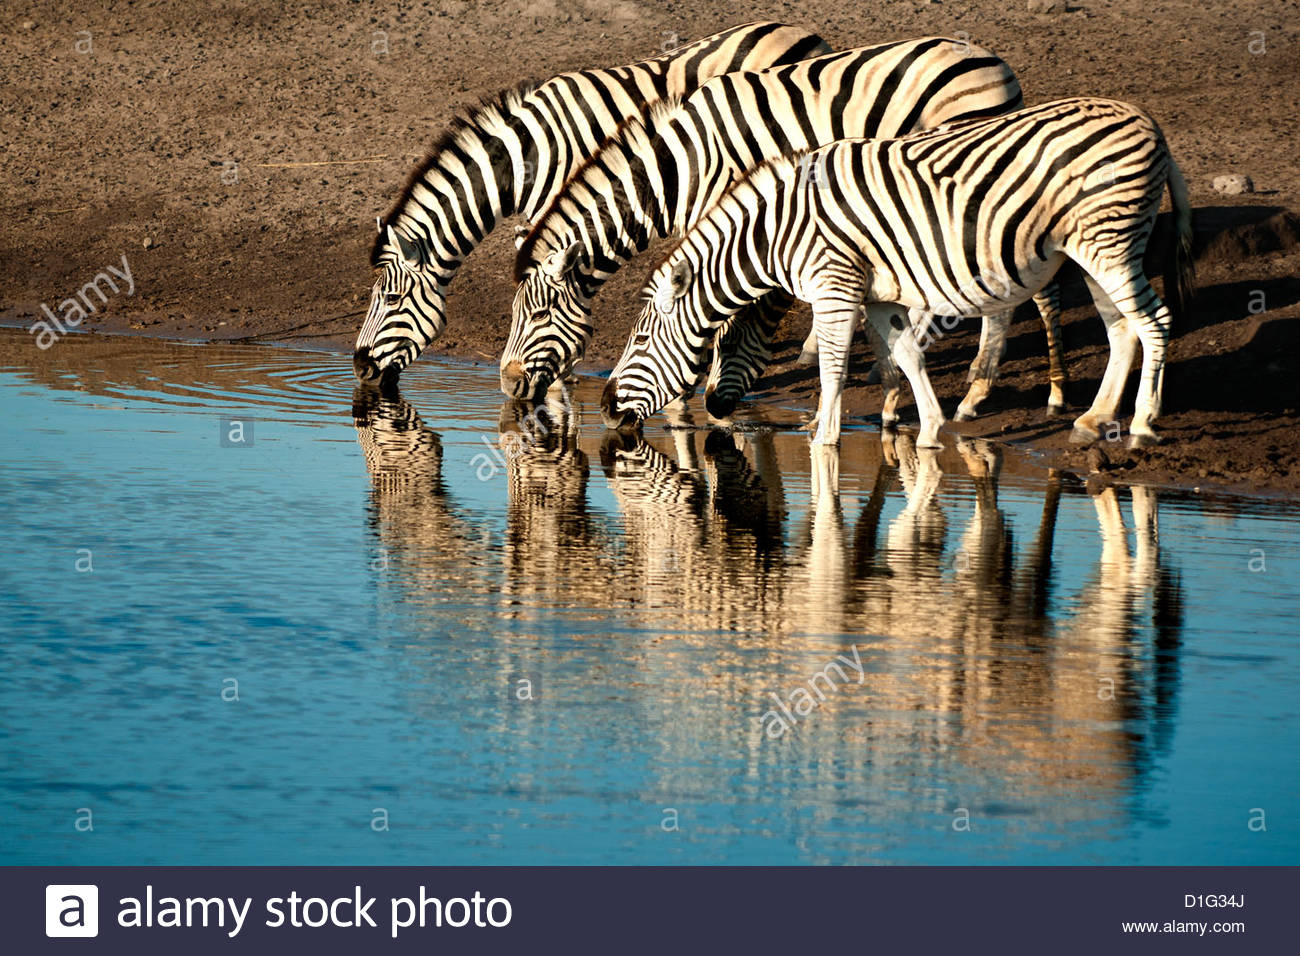 Trio of common zebras (Equus burchelli) at a water hole, Etosha National Park, Namibia, Africa - Stock Image